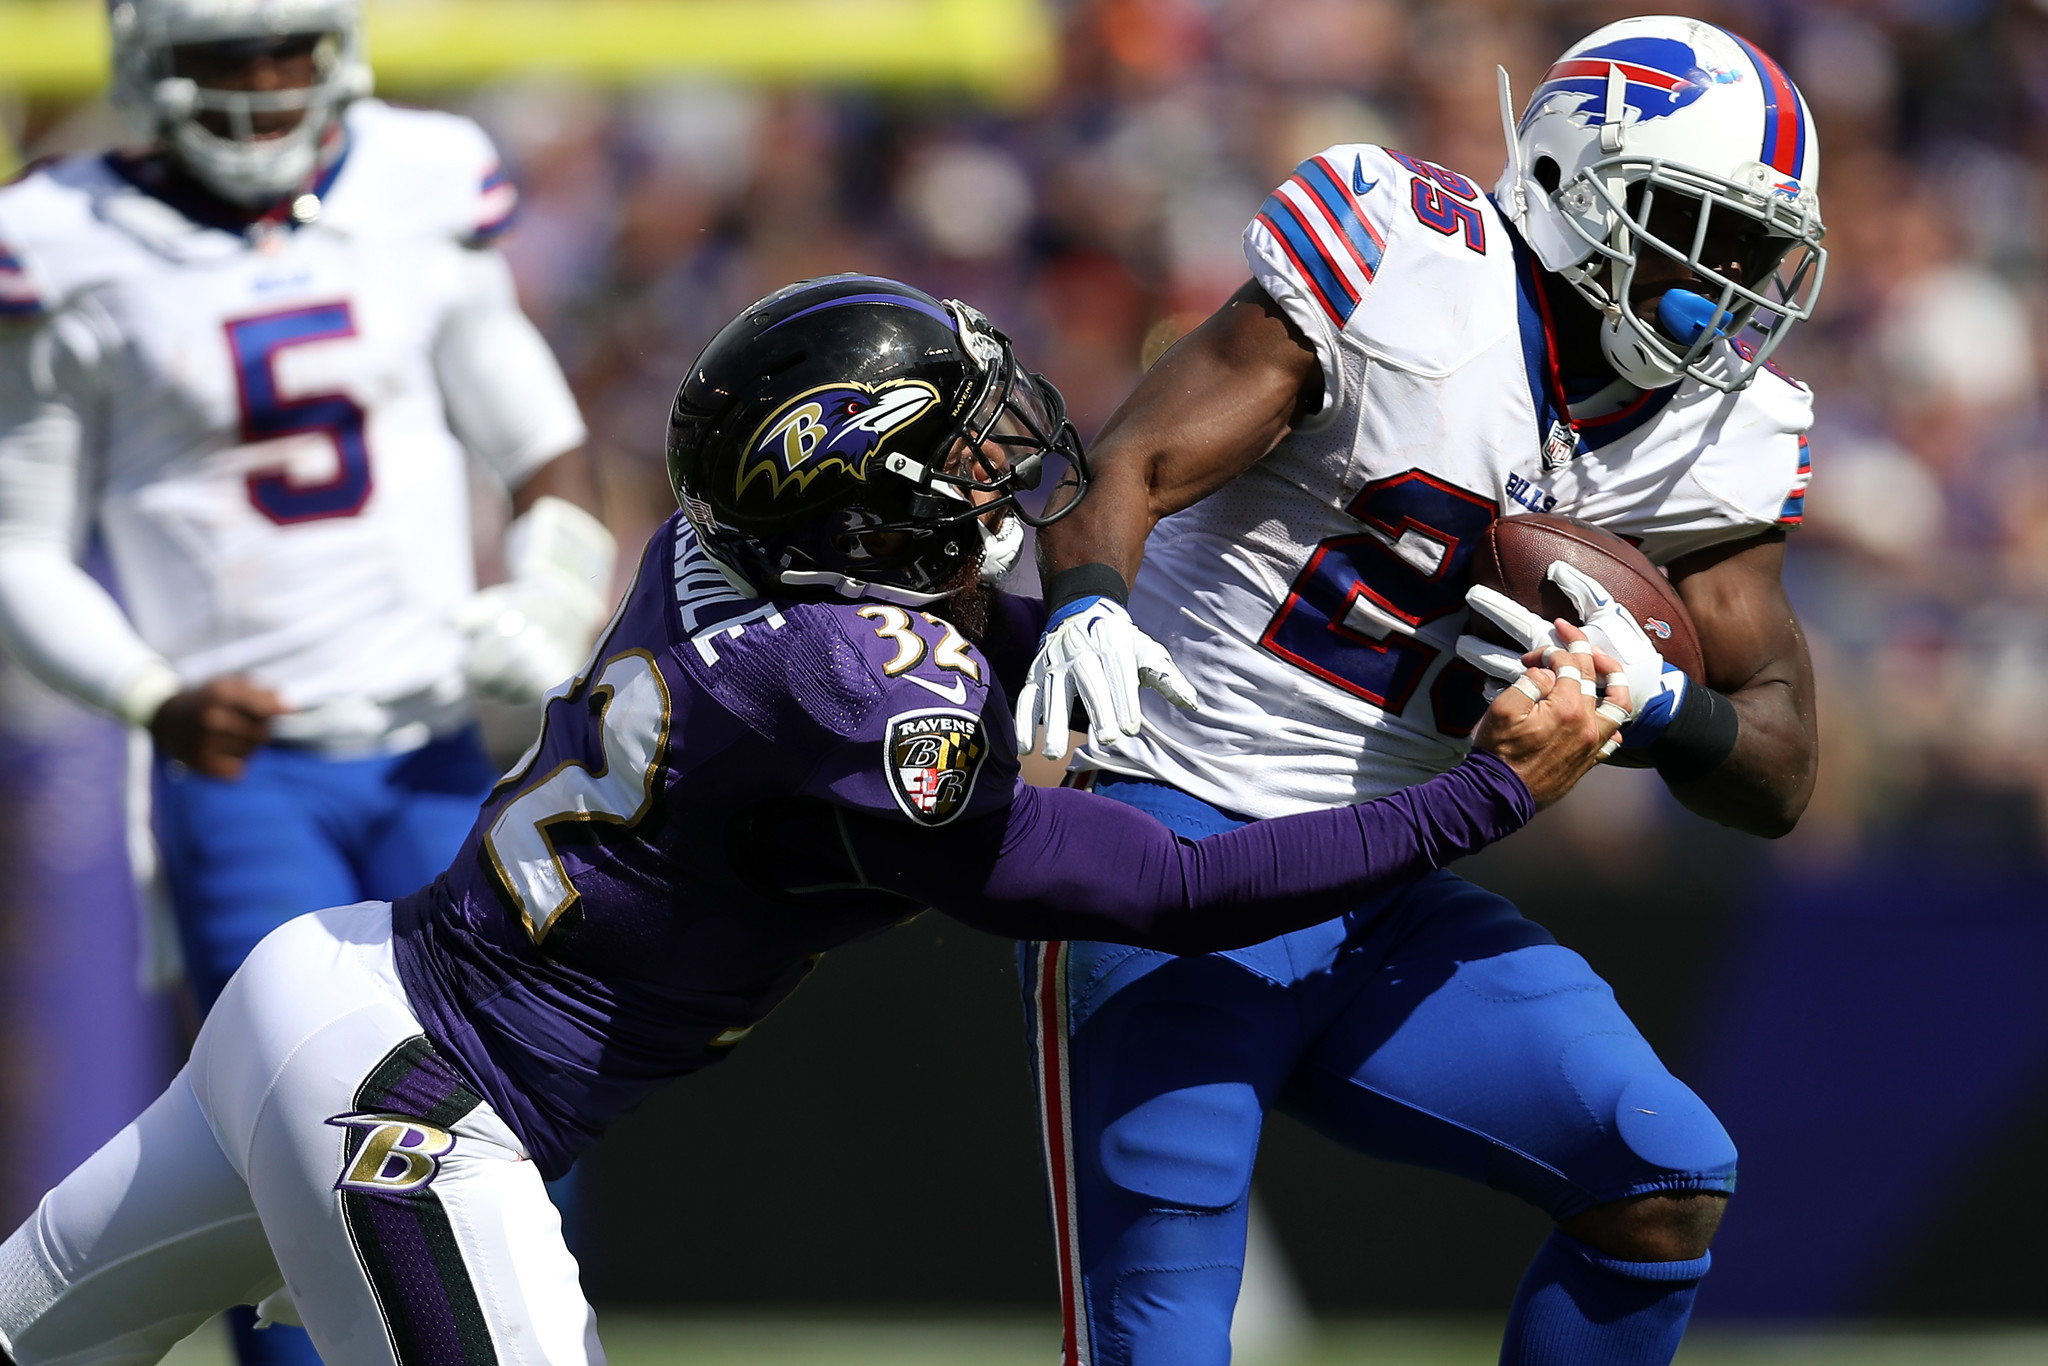 Bal-five-things-we-learned-from-the-ravens-13-7-win-over-the-bills-20160911